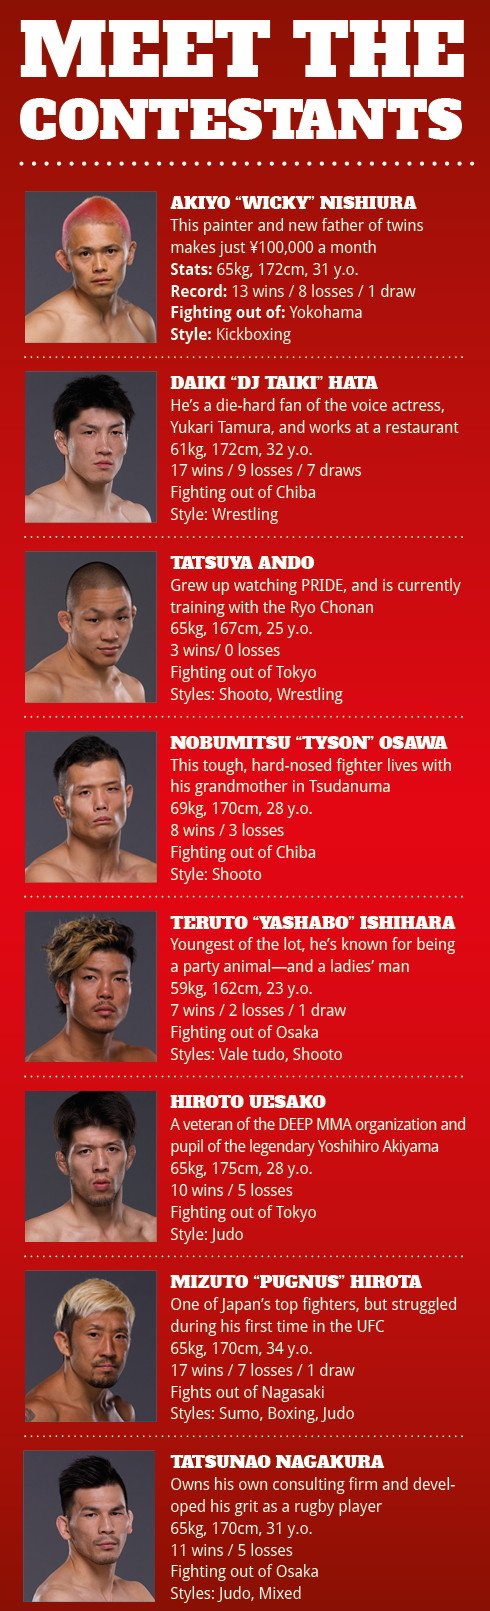 Road-to-UFC-contestants